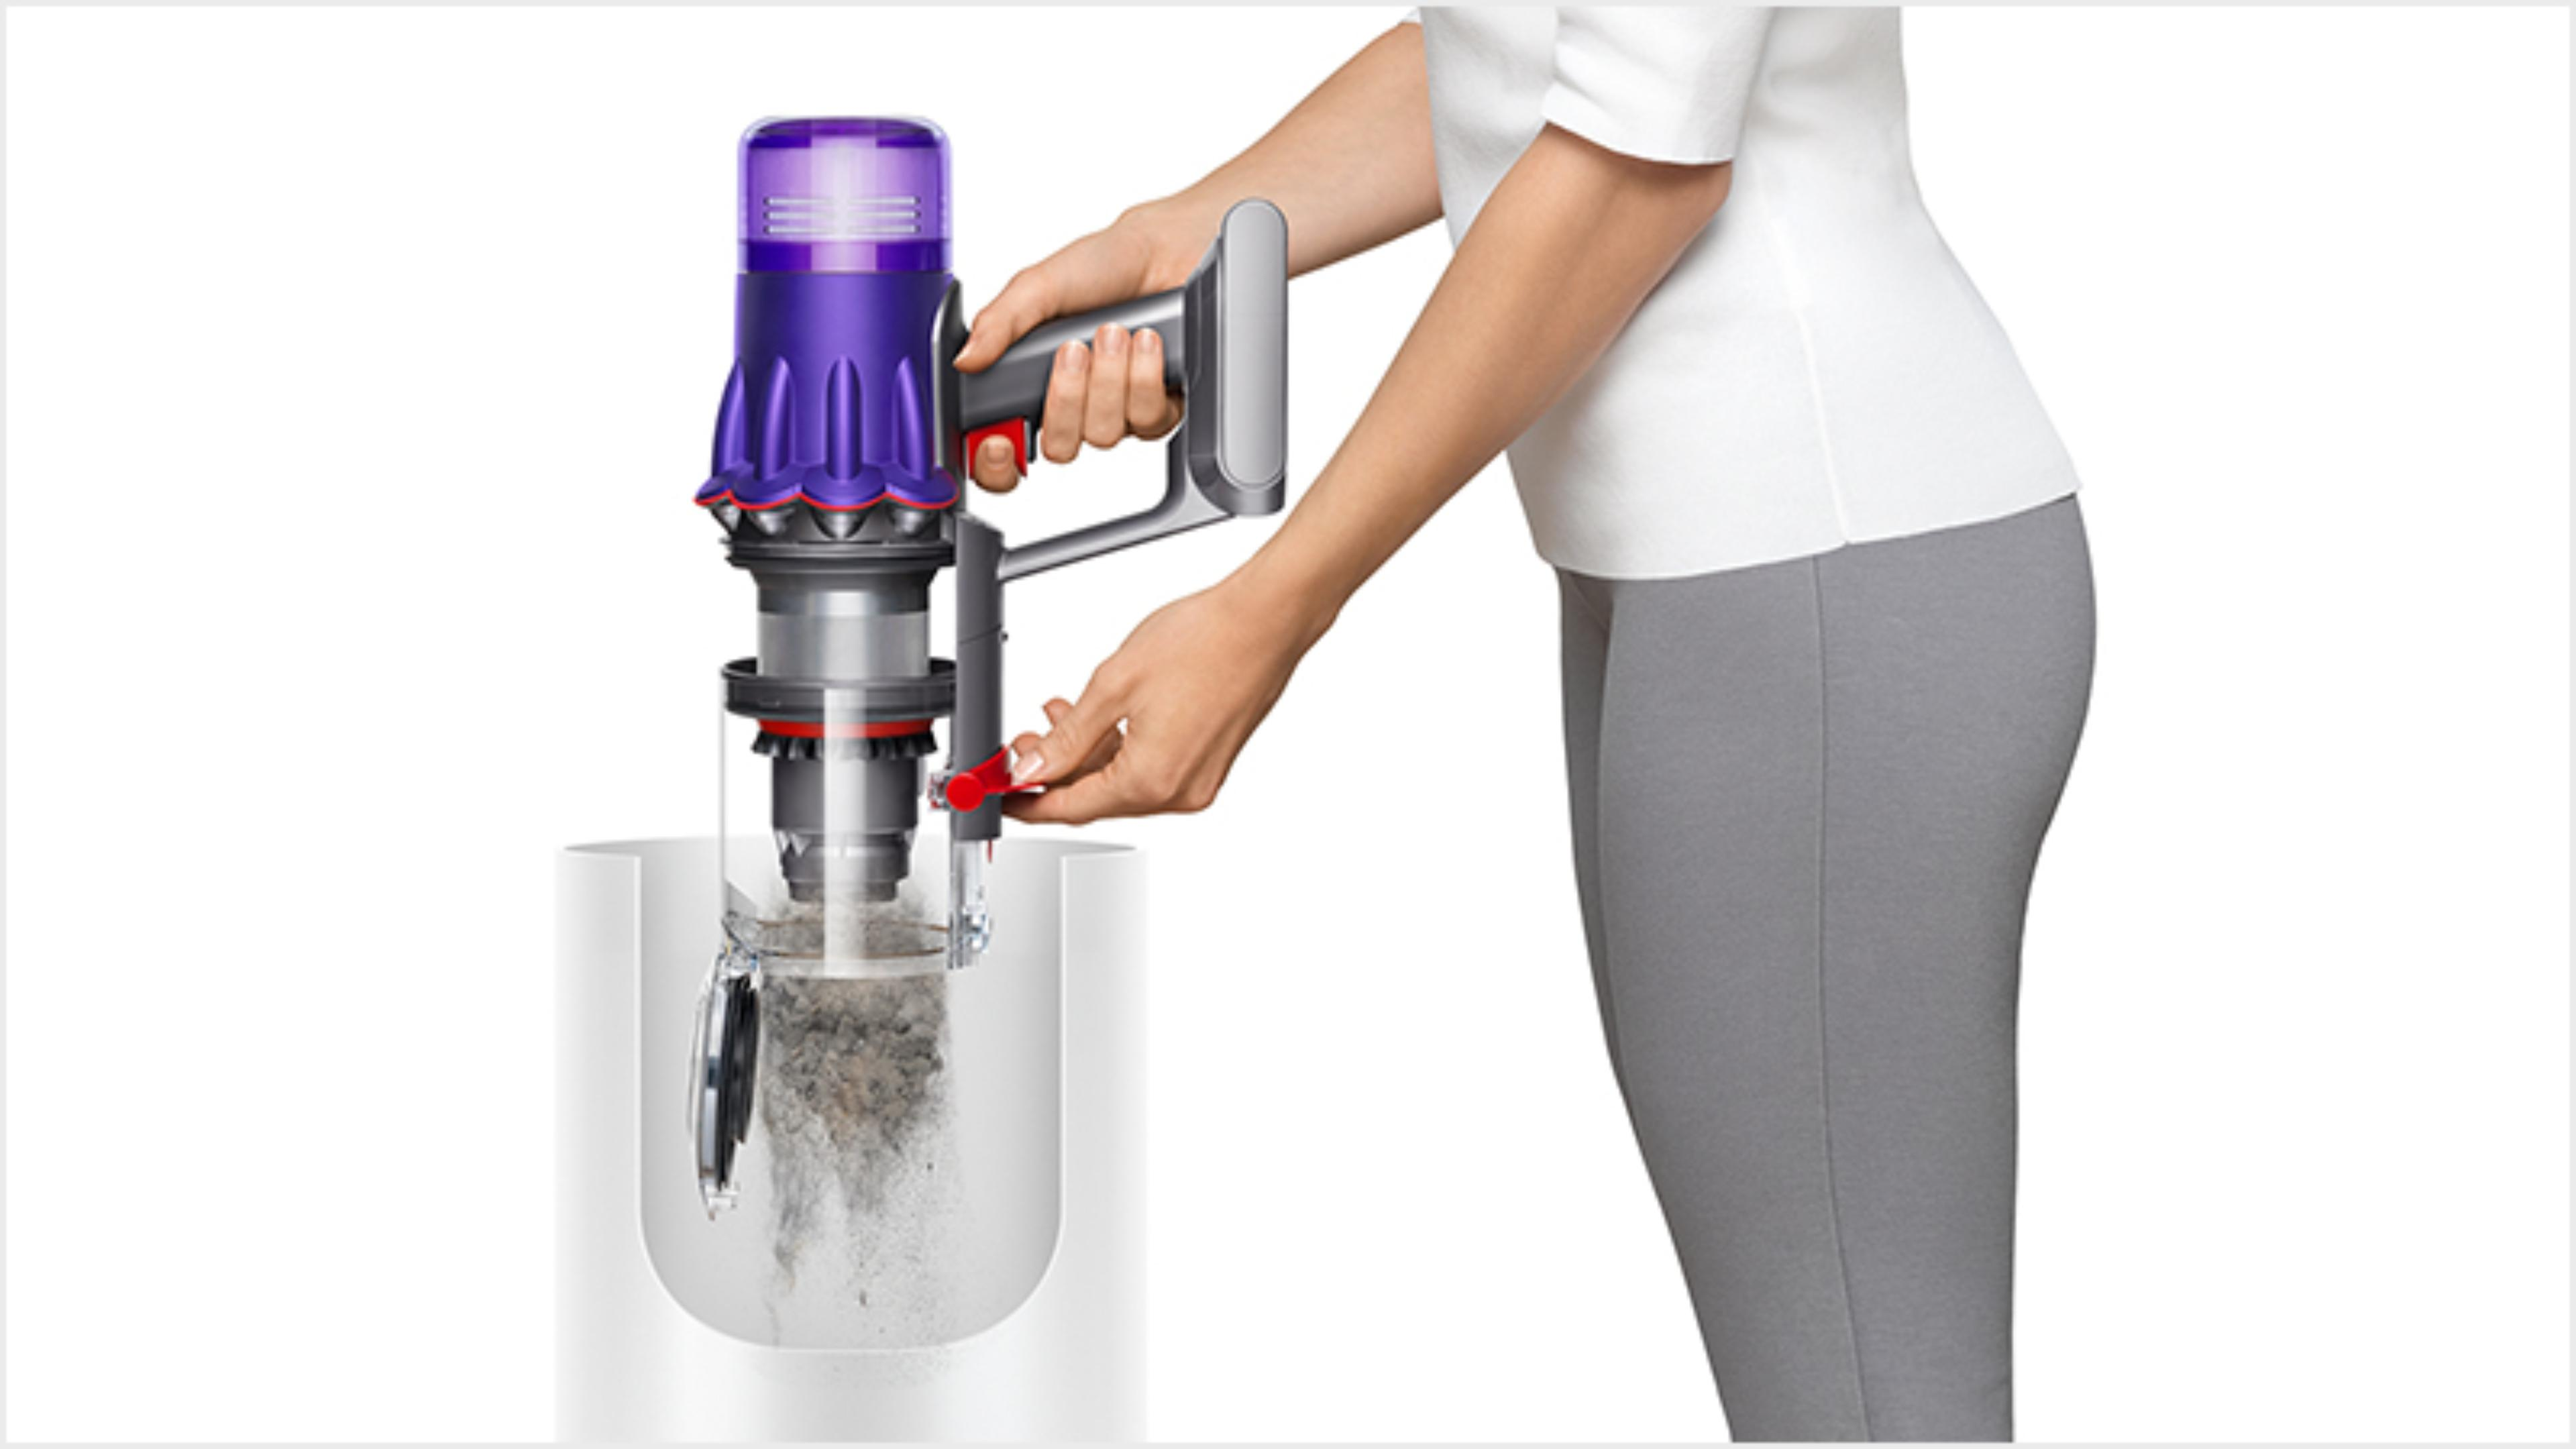 Woman emptying the Dyson Digital Slim vacuum into the bin